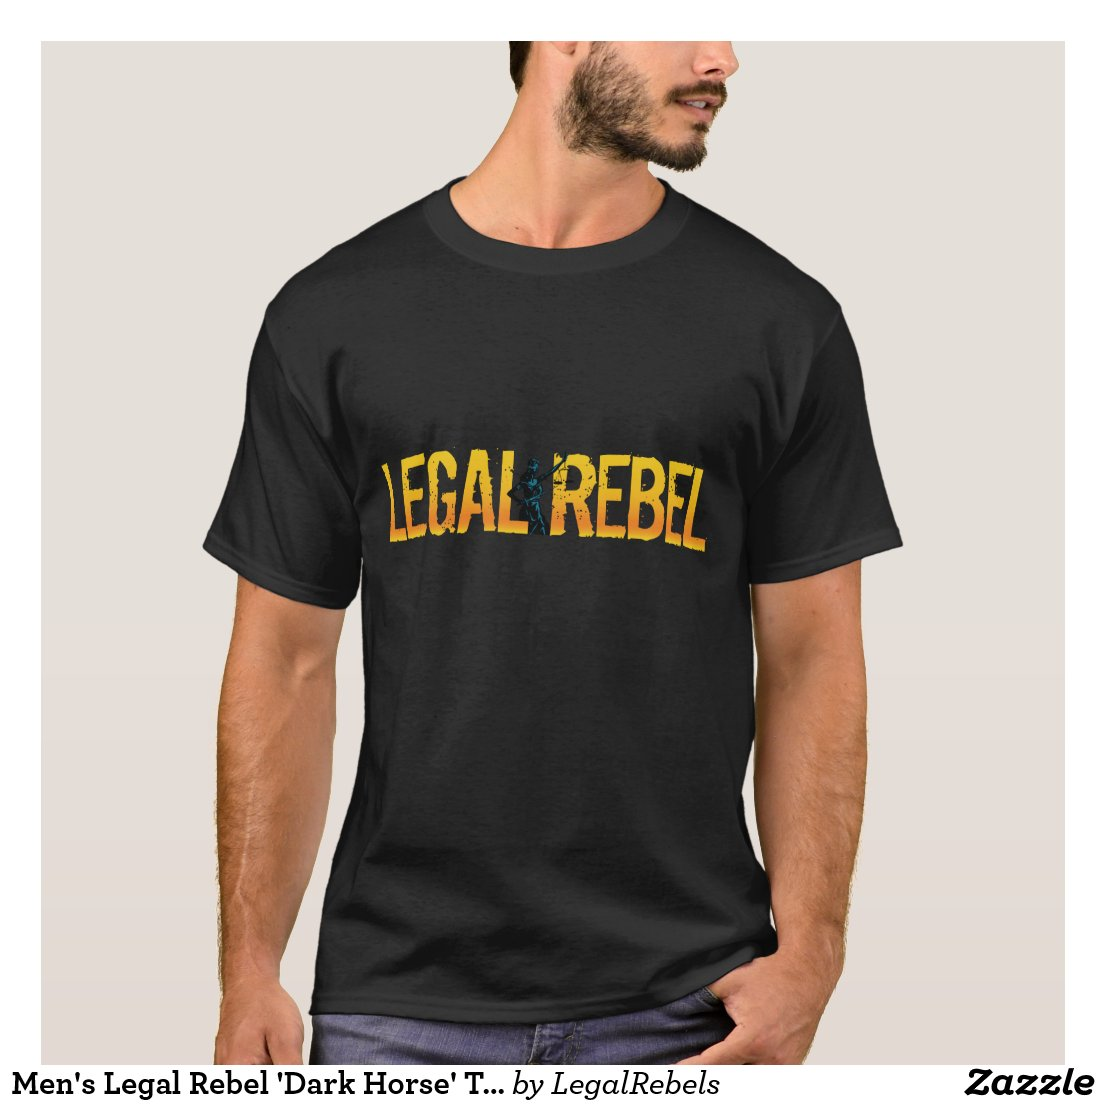 Men's Legal Rebel 'Dark Horse' T-Shirt